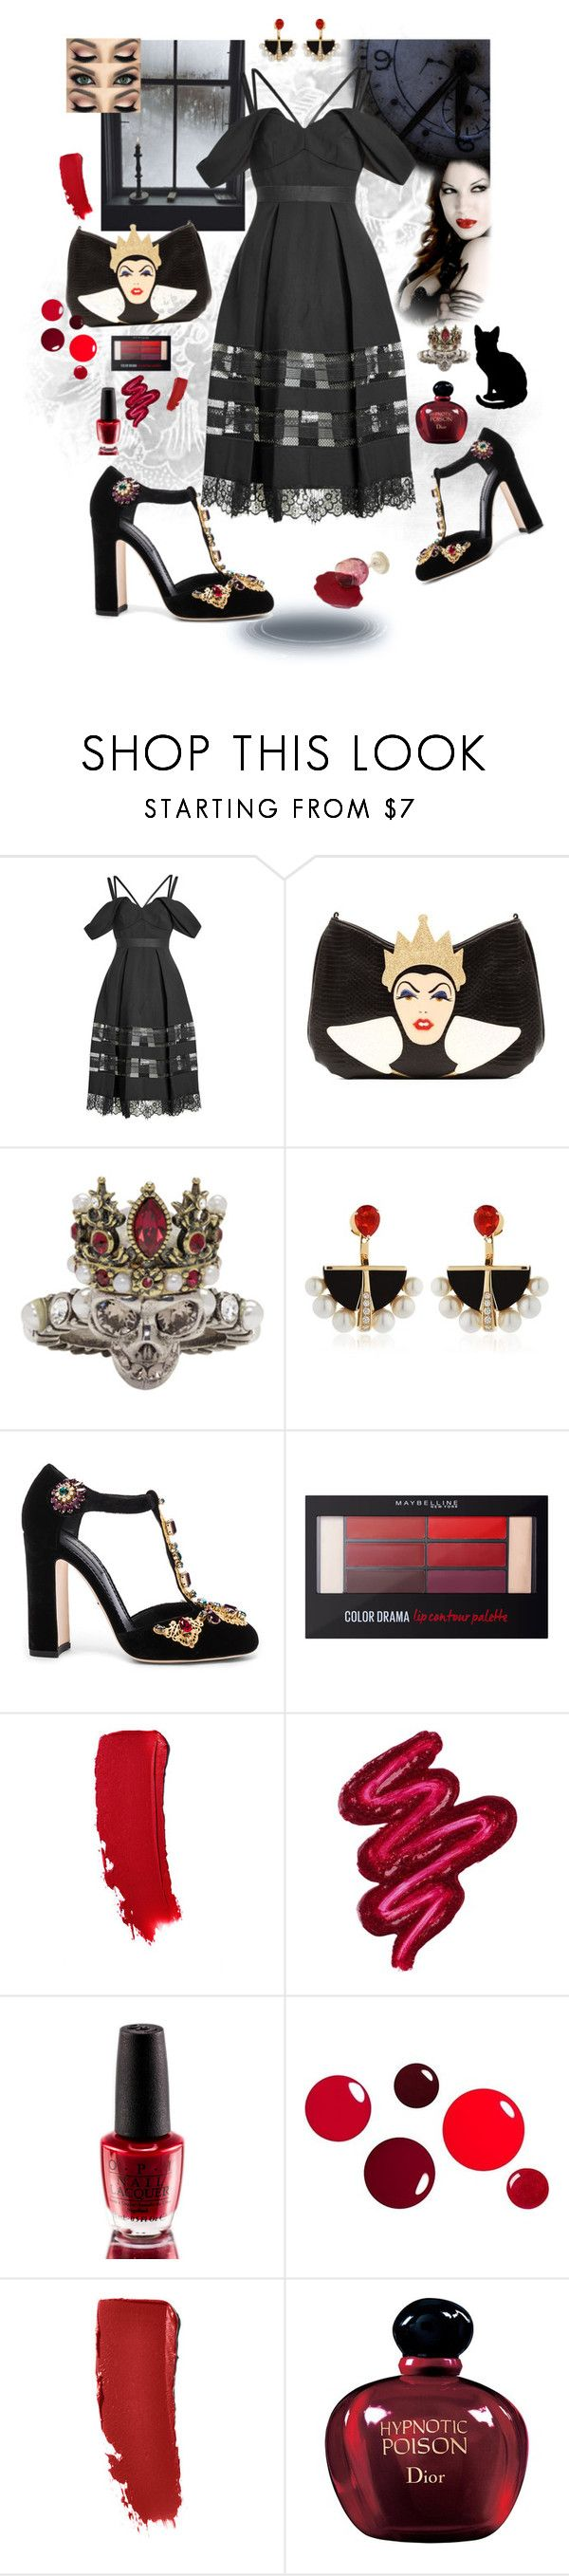 """Black Magic Biatch"" by ohnoflo ❤ liked on Polyvore featuring self-portrait, Danielle Nicole, Alexander McQueen, Lalique, Dolce&Gabbana, Maybelline, Obsessive Compulsive Cosmetics, OPI and Christian Dior"